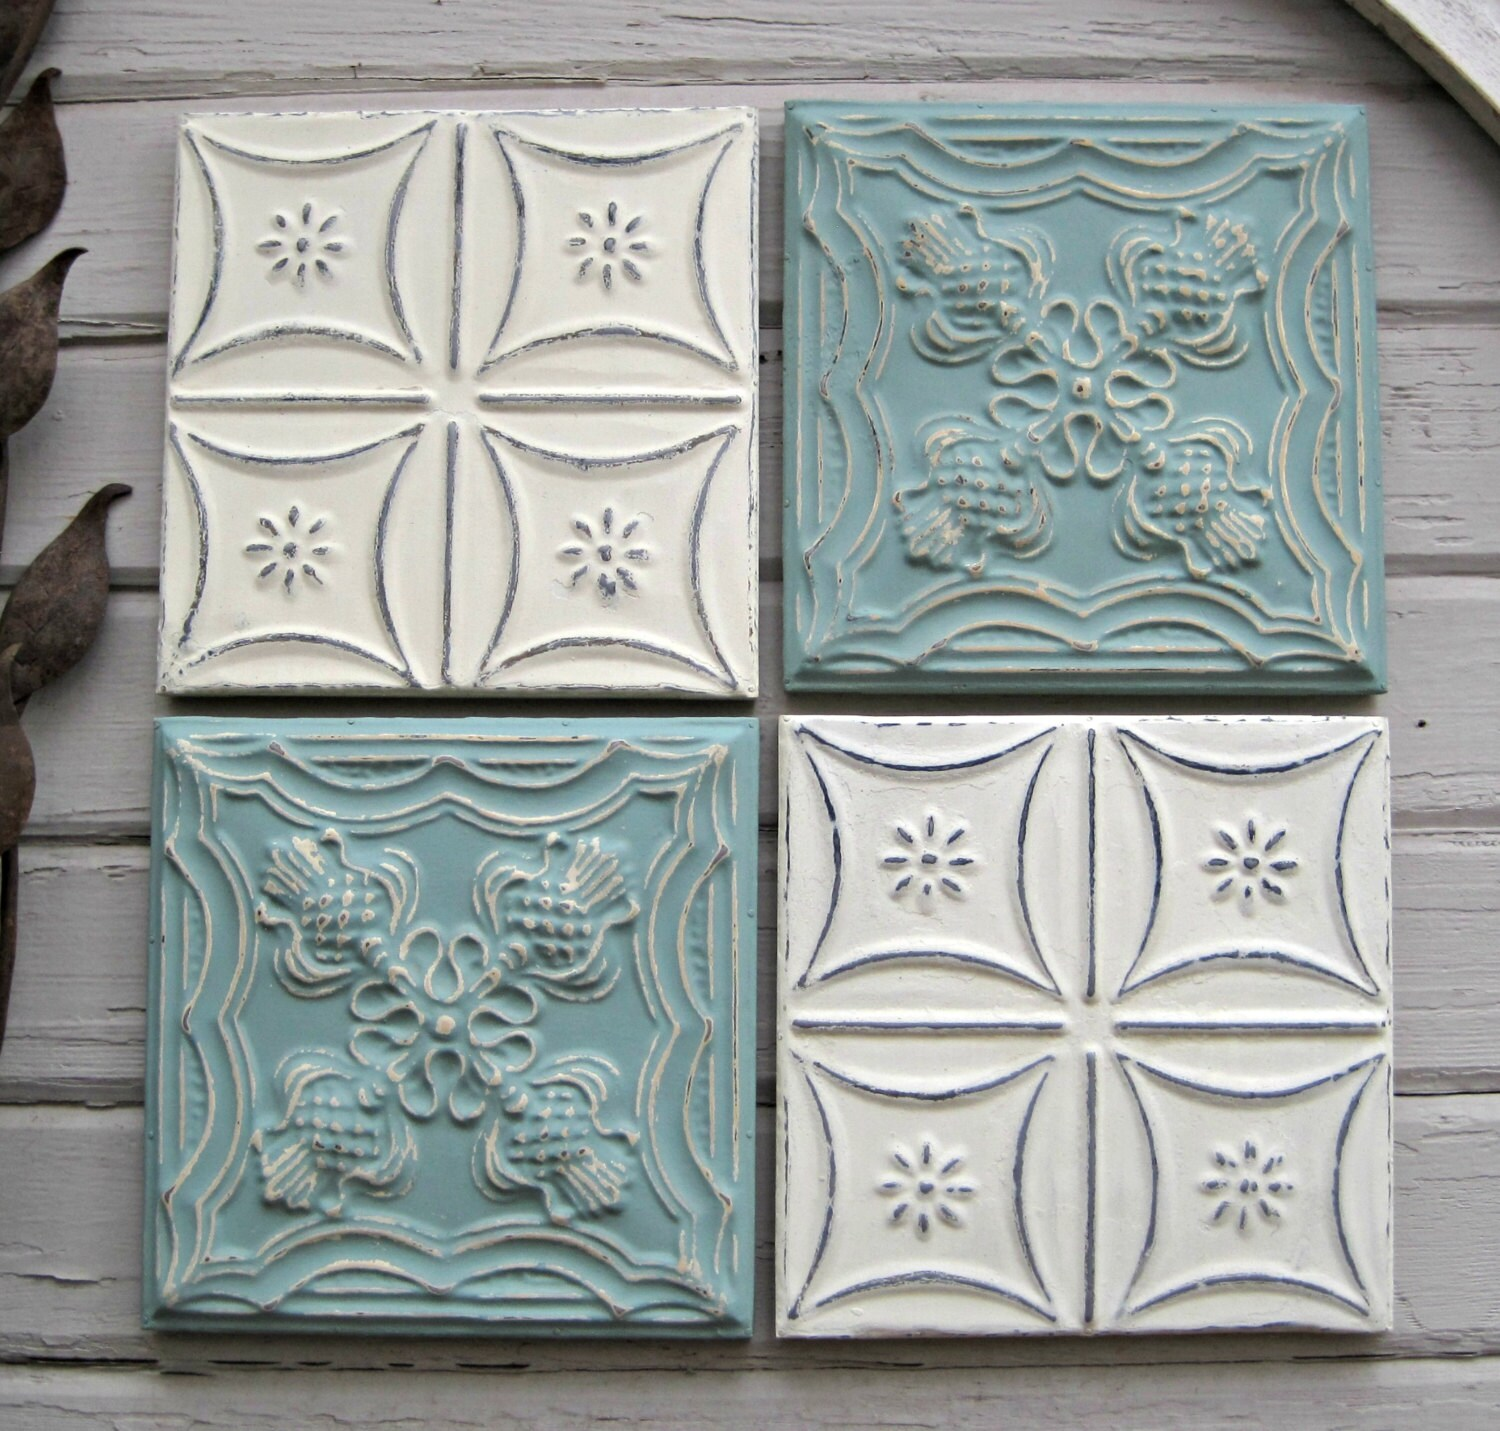 Tin ceiling tile set of 4 12 x 12 framed tiles for Individual ceiling tiles for sale